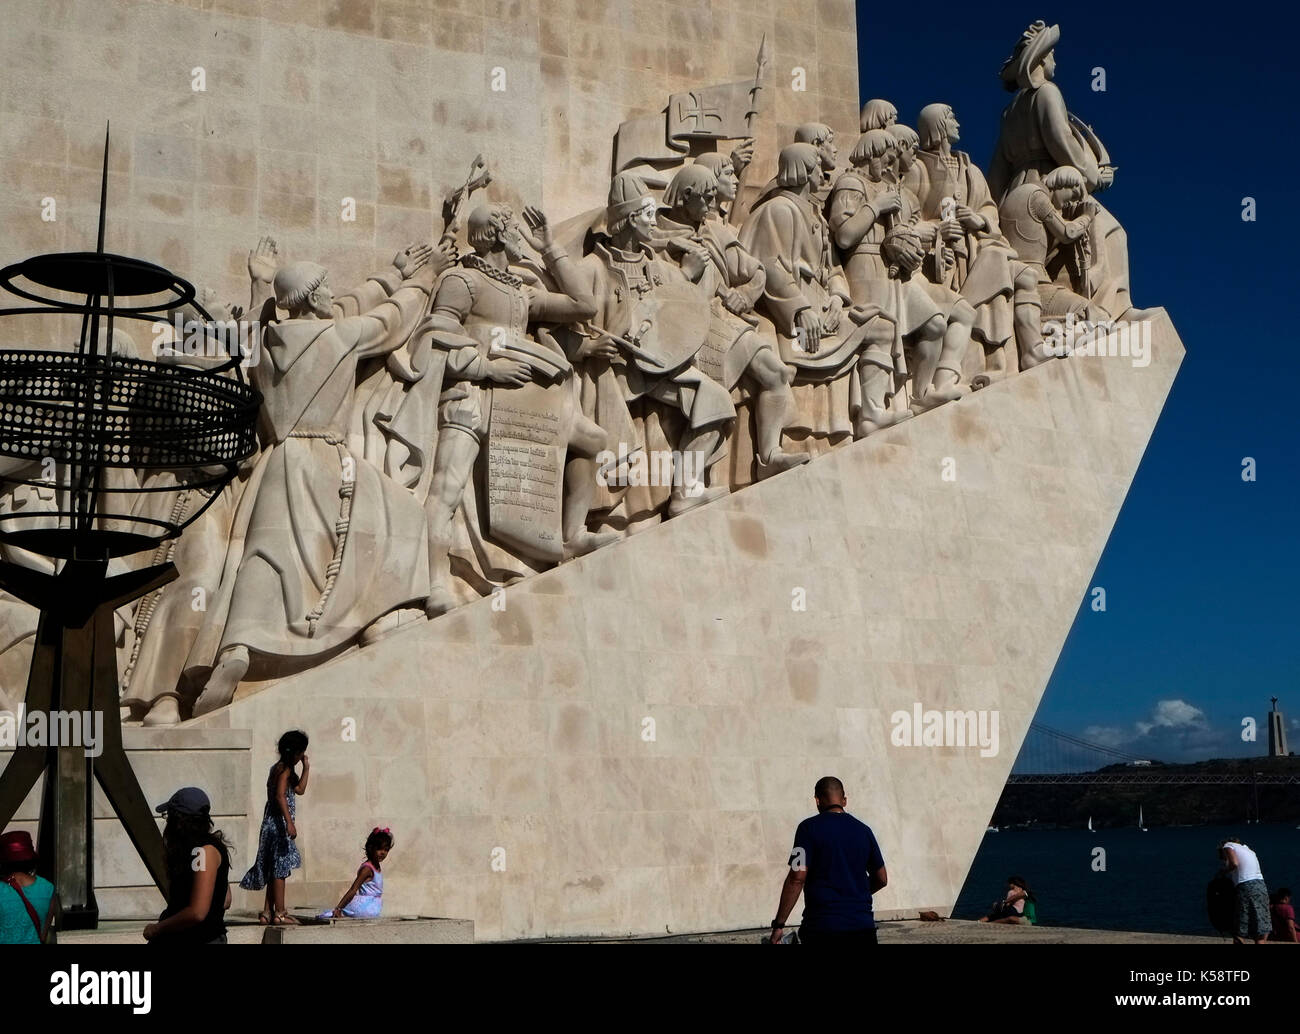 Tourists visit the Padrao dos Descobrimentos (Monument of the Discoveries) in, Belem near Lisbon, Portugal August 27, 2017.© John Voos - Stock Image